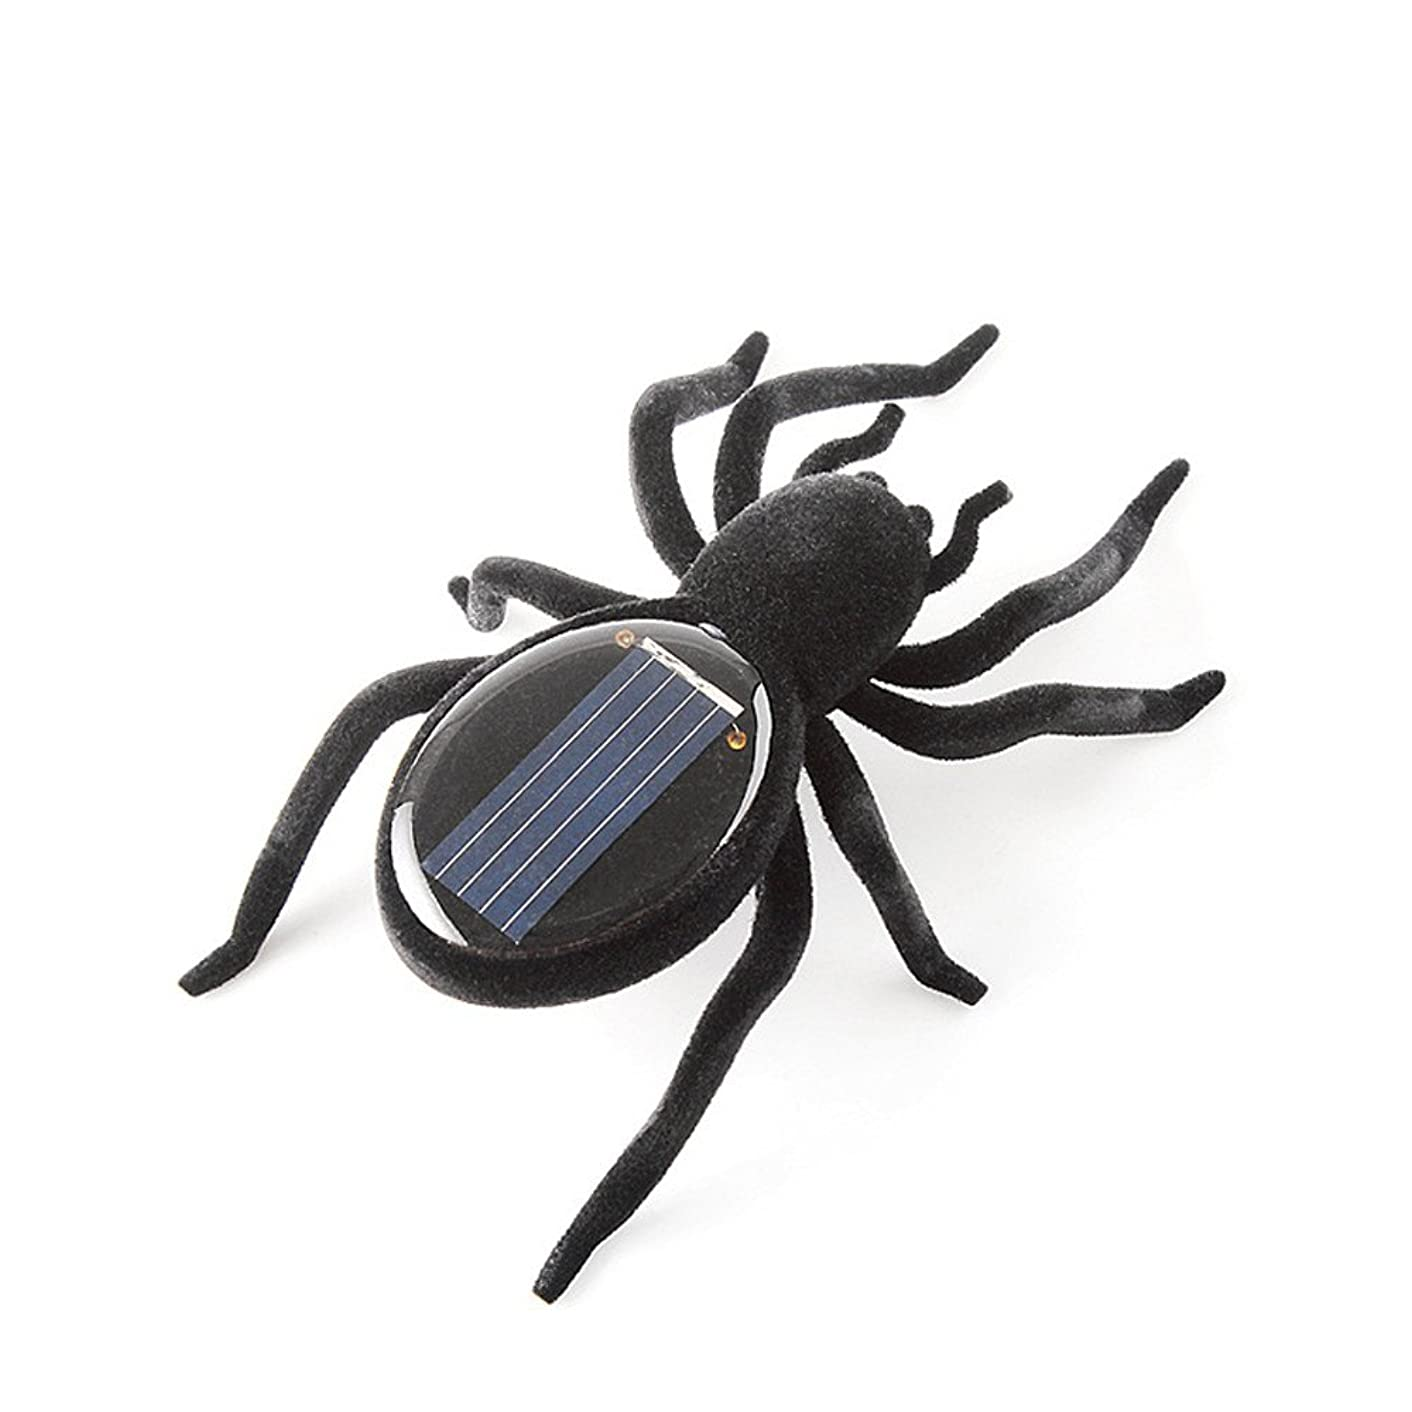 ?? Euone ?? Energy Toy Clearance Sale , Educational Solar Powered Spider Robot Toy Solar Powered Toy Gadget Gift